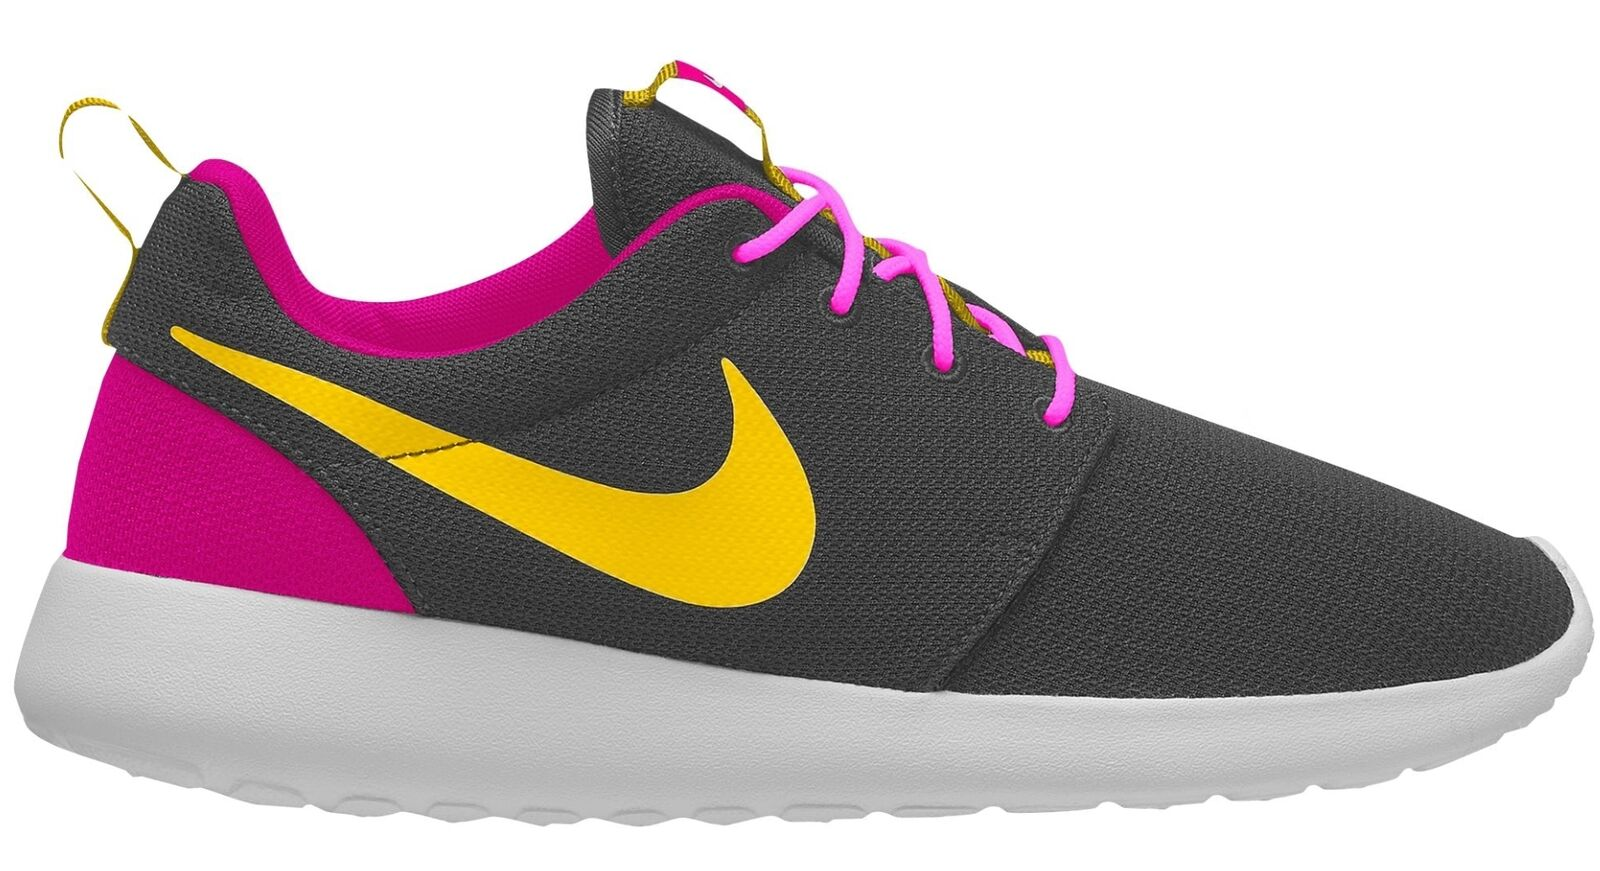 Nike Roshe One Mens 511881-035 Anthracite Magenta Yellow Running Shoes Size 8